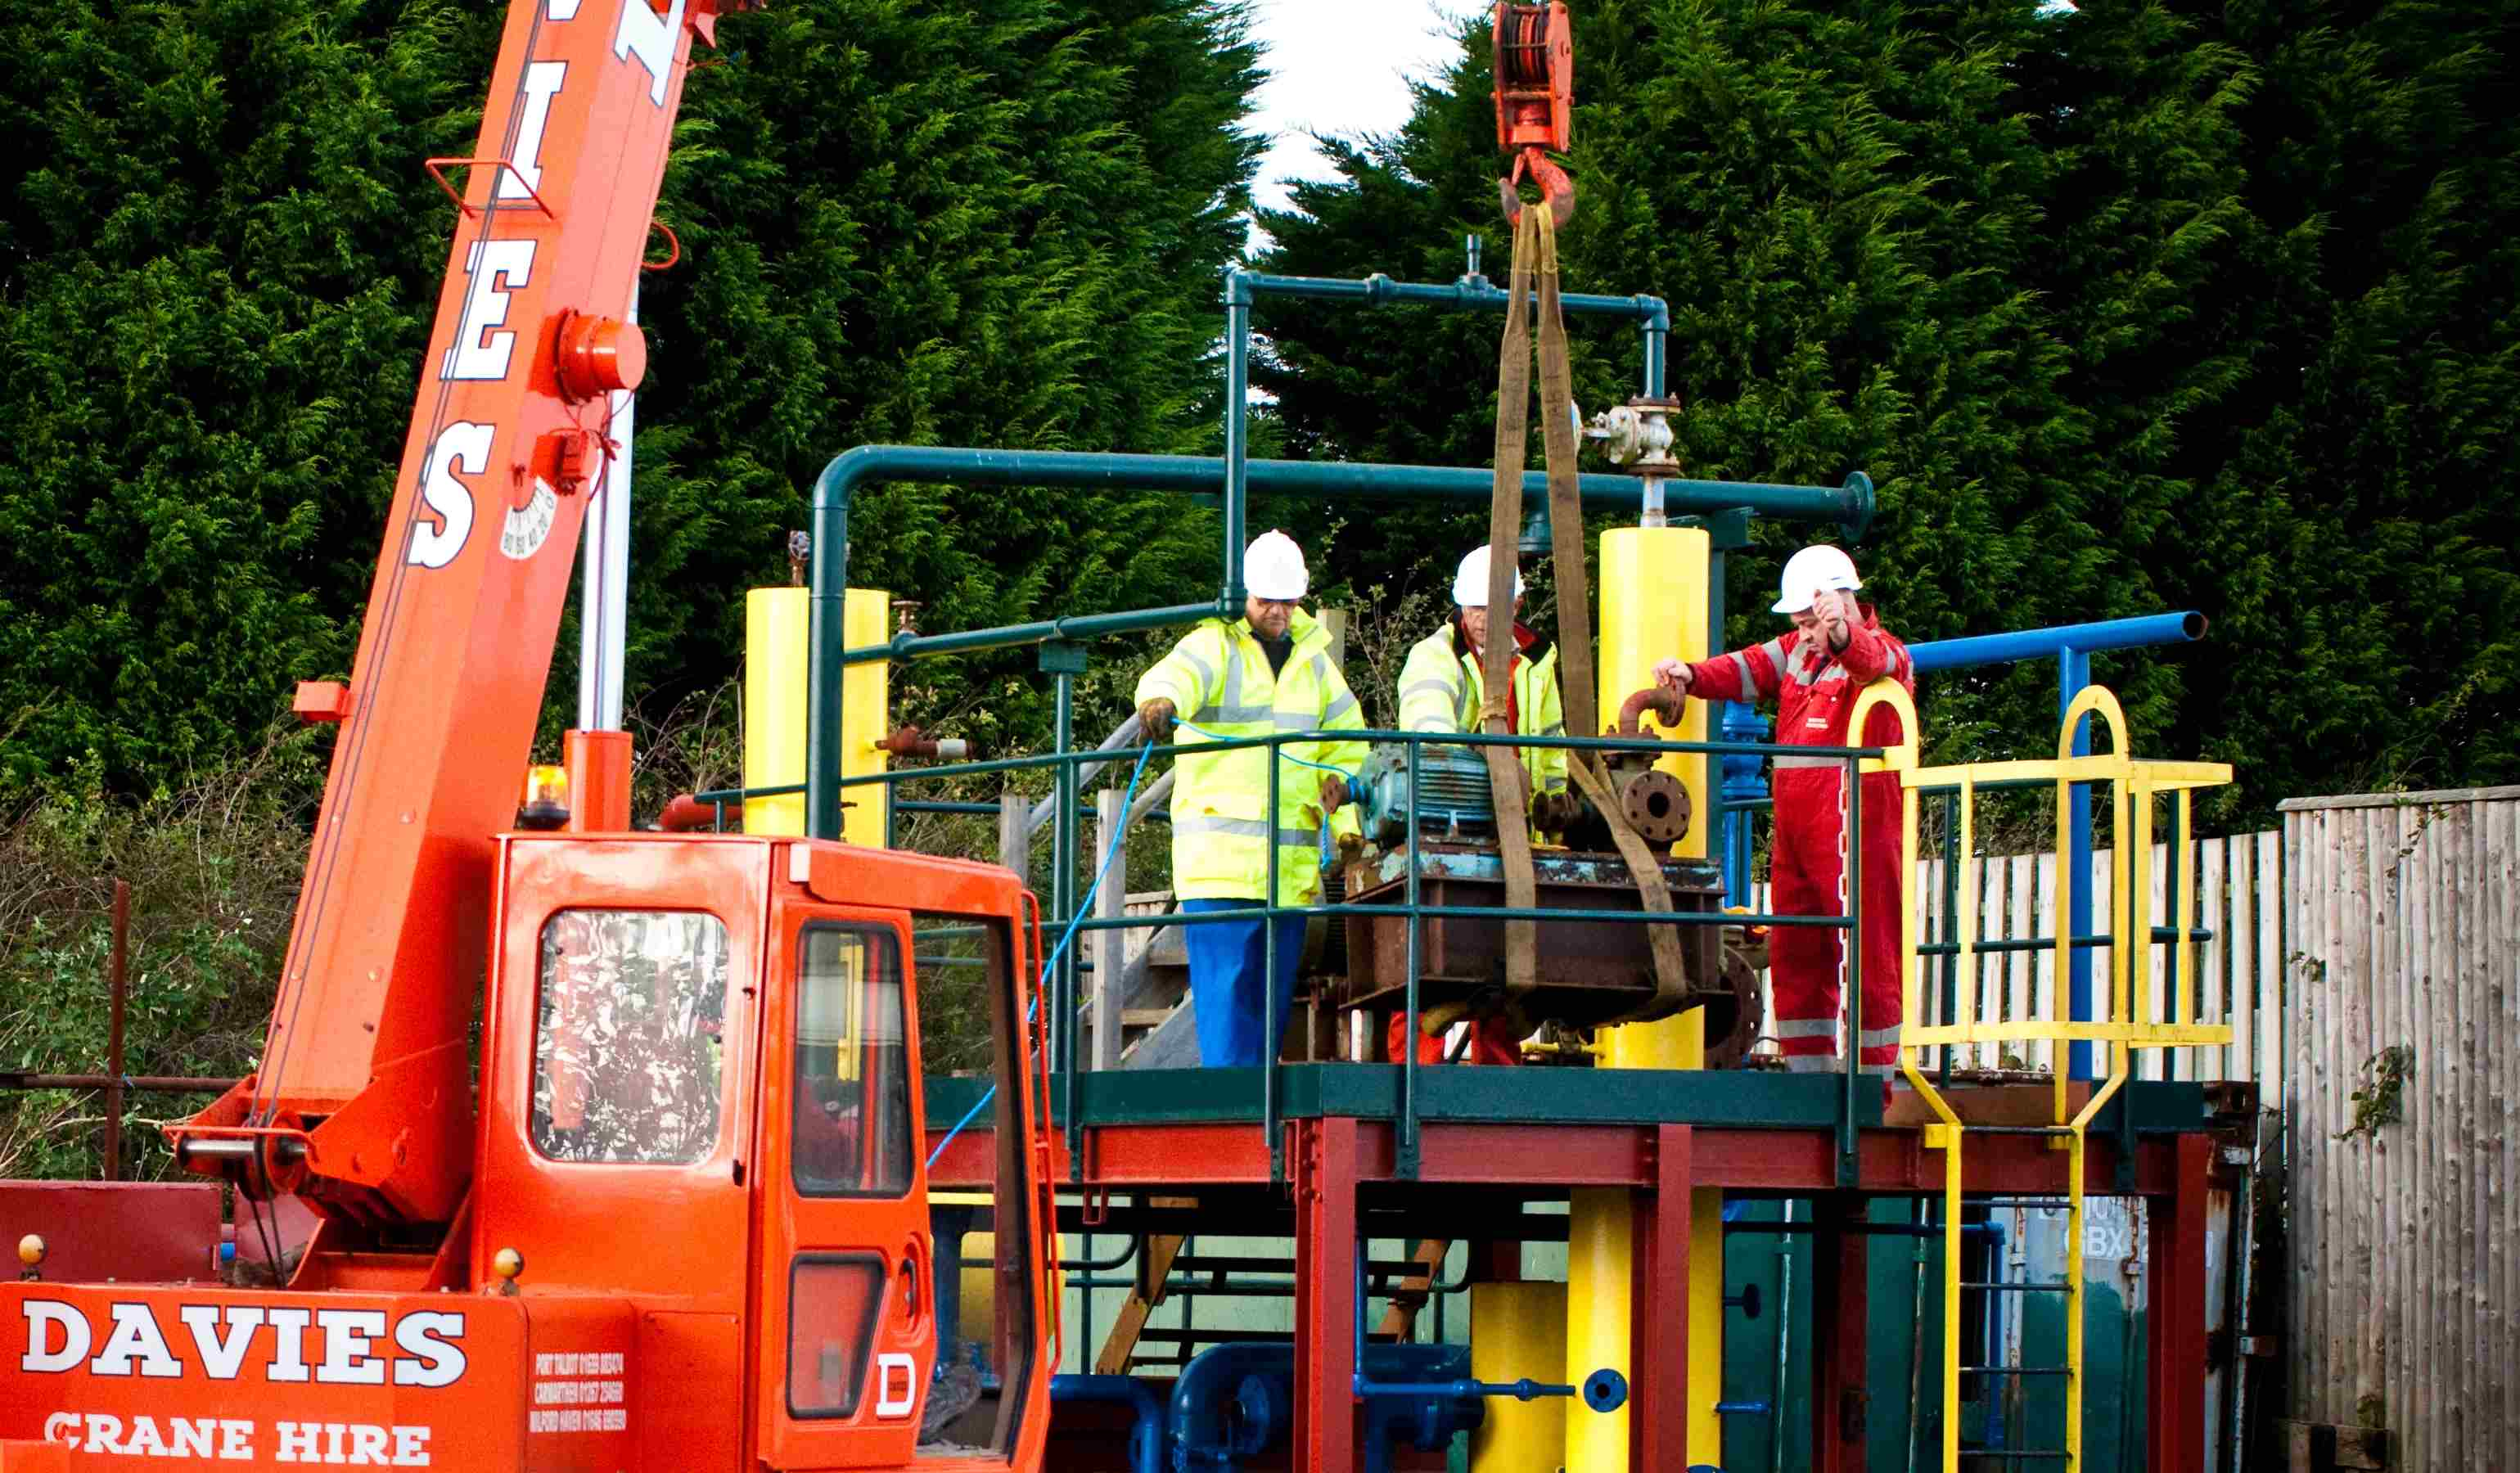 The second day of a Novice Slinger Signaller course and delegates are putting their theory training into practice